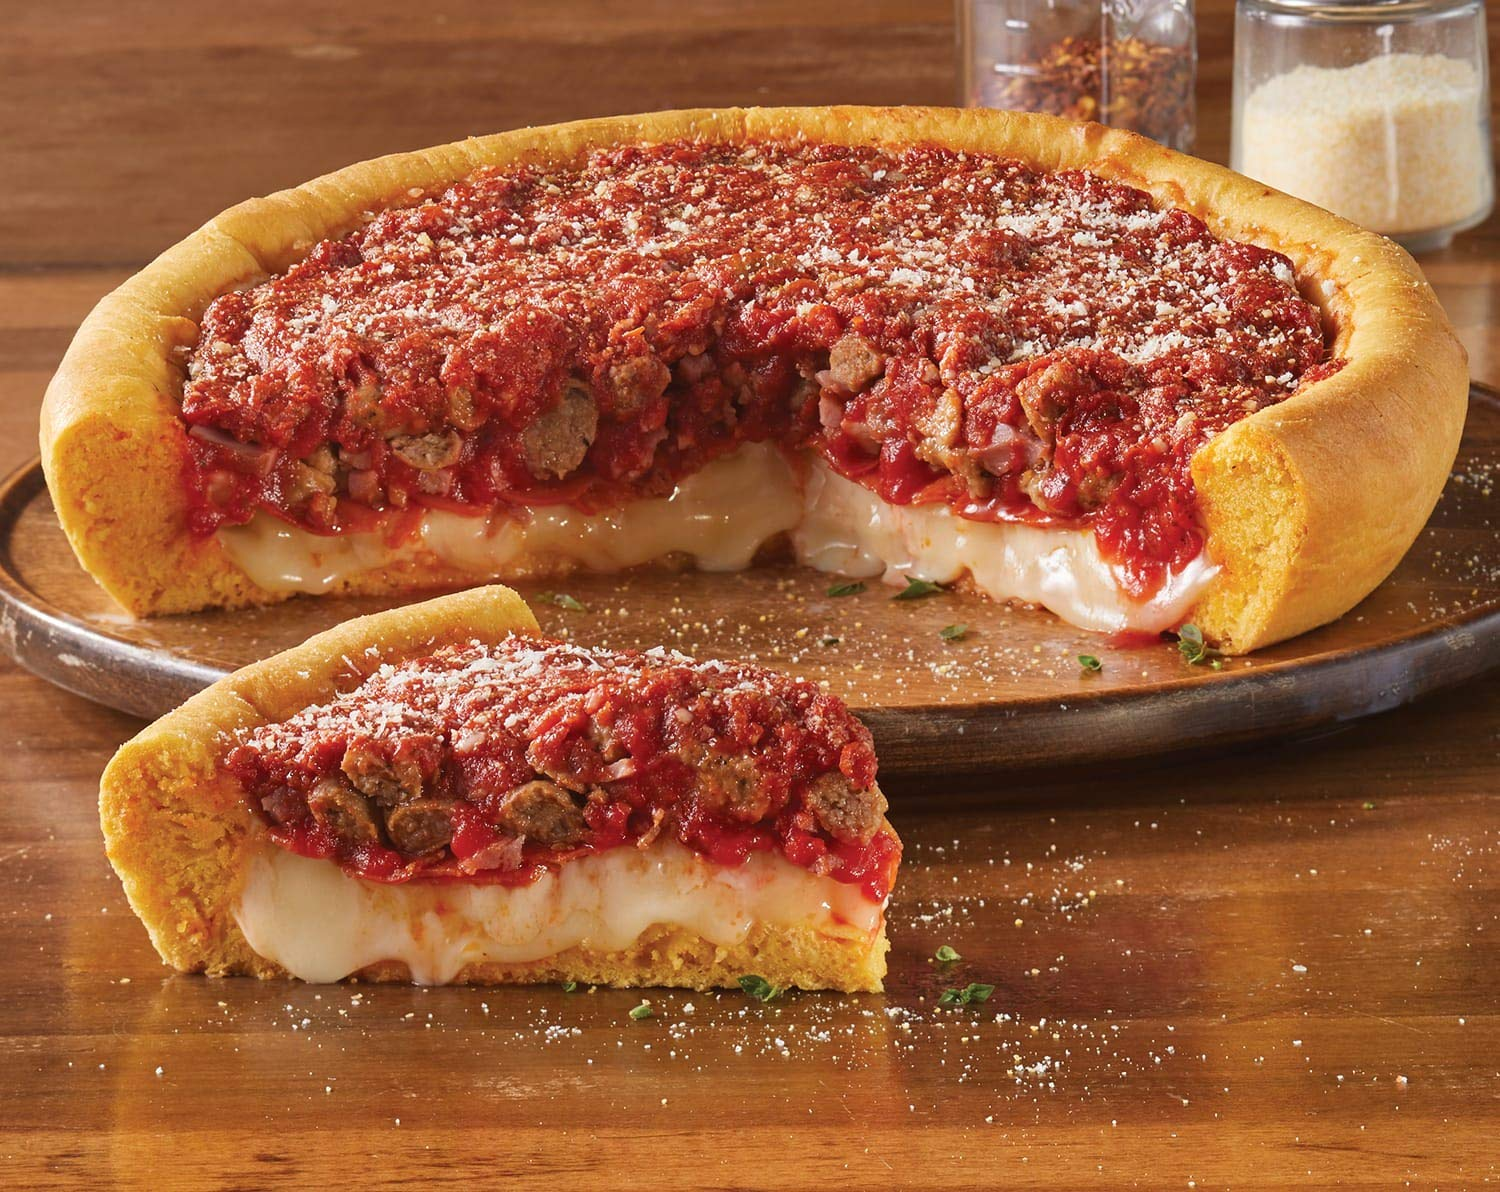 Buy 2 Meaty Legend Deep-Dish Pizzas from The Swiss Colony